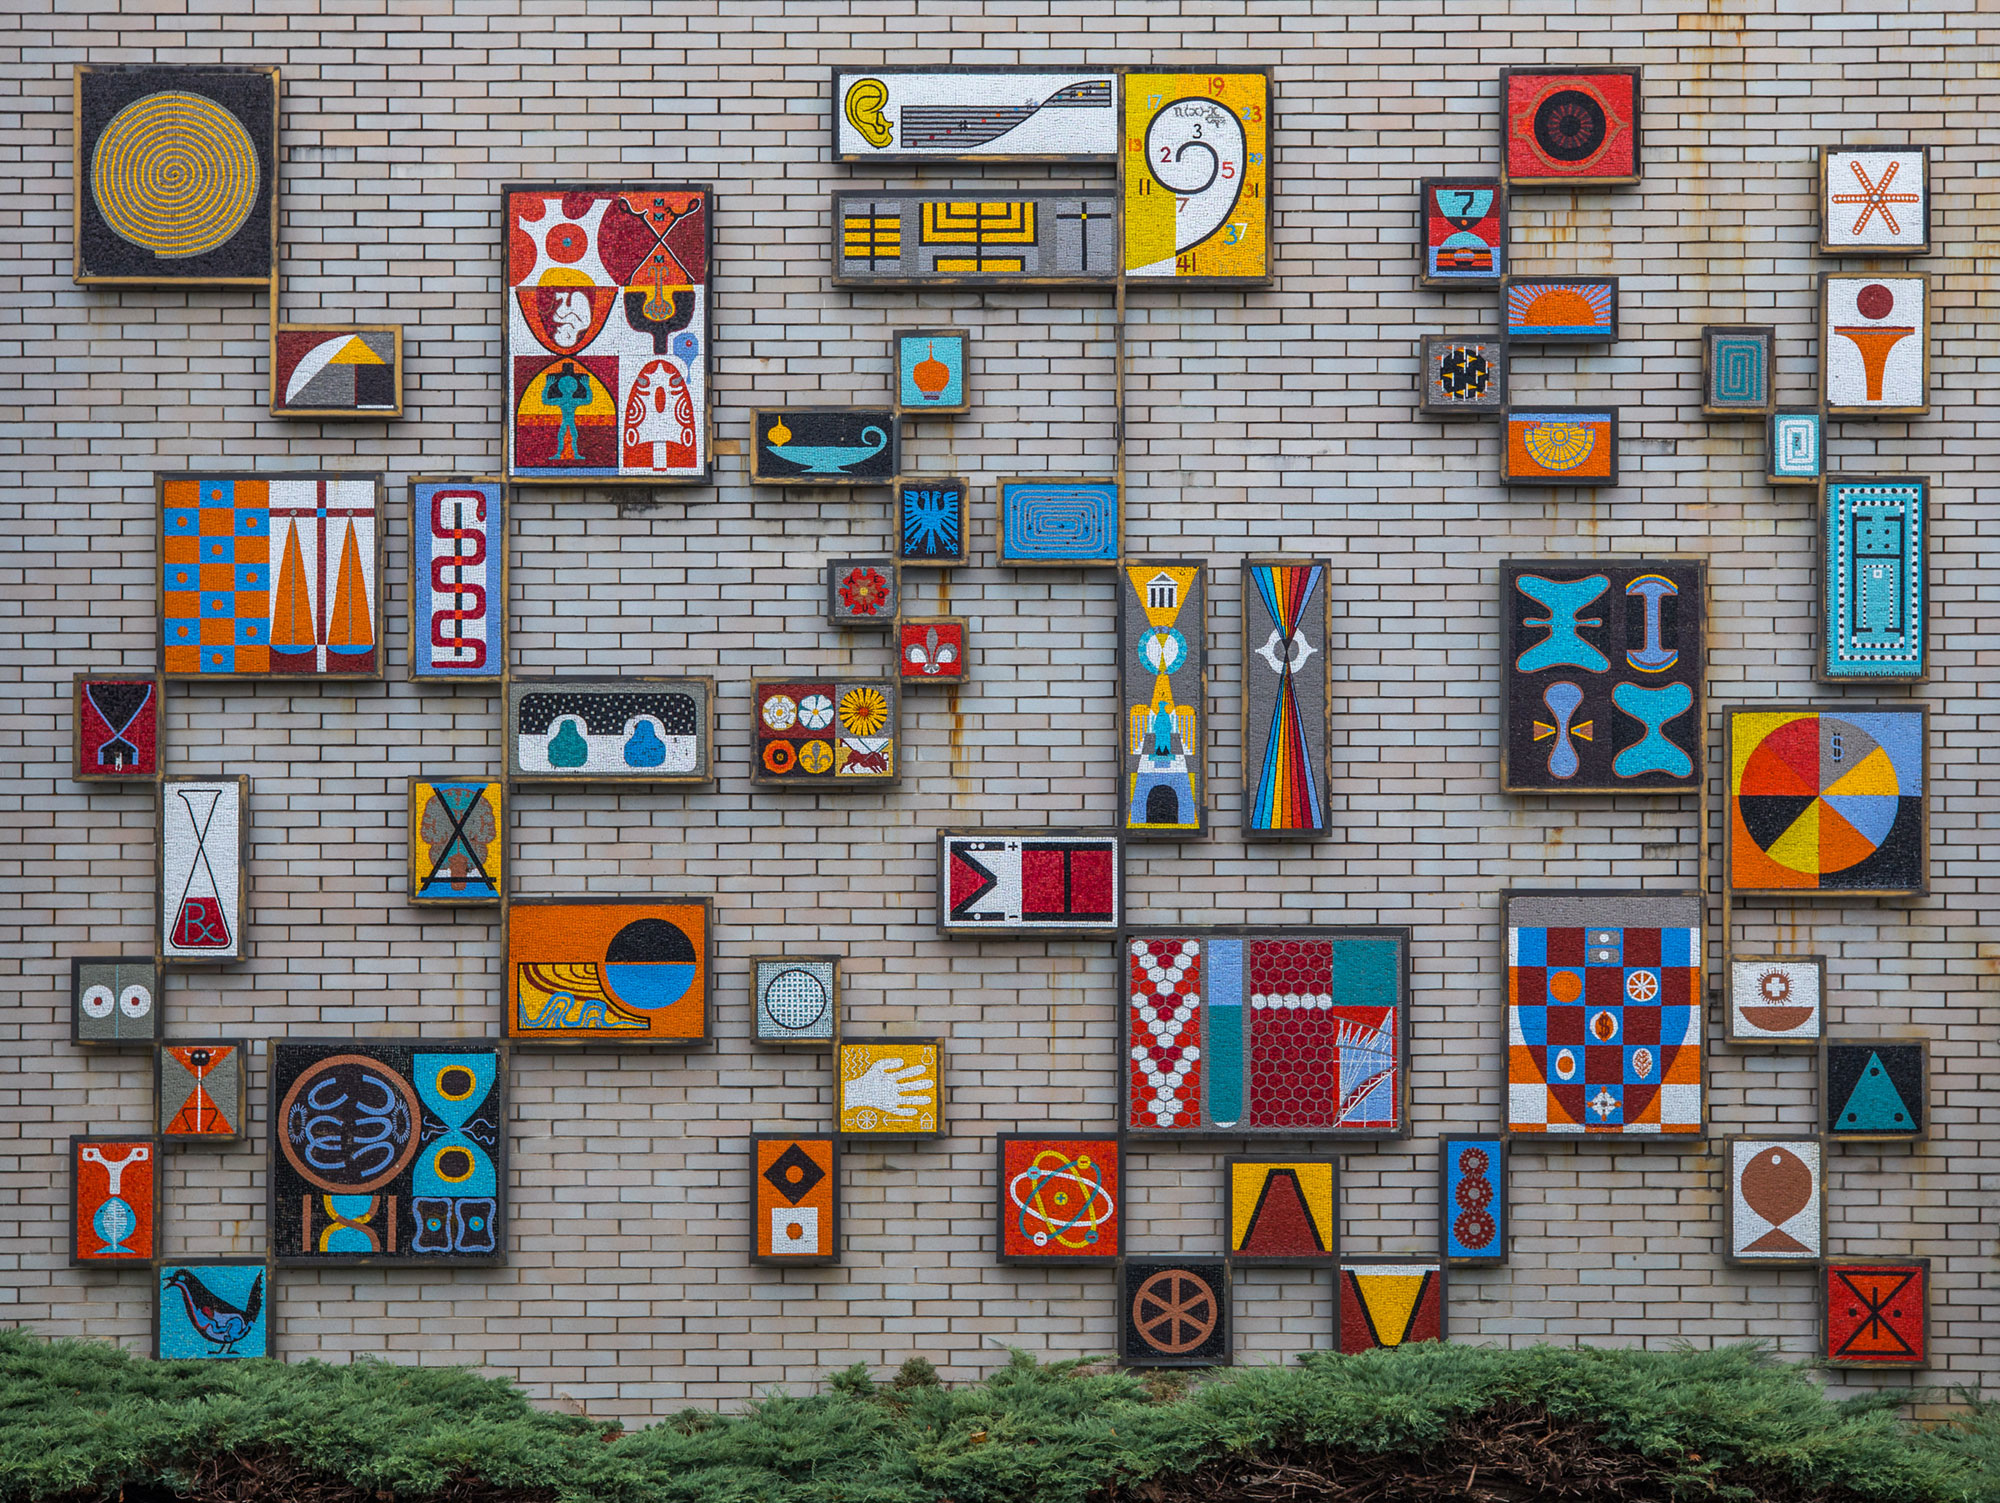 Untitled (Symbols and Forms of Education)